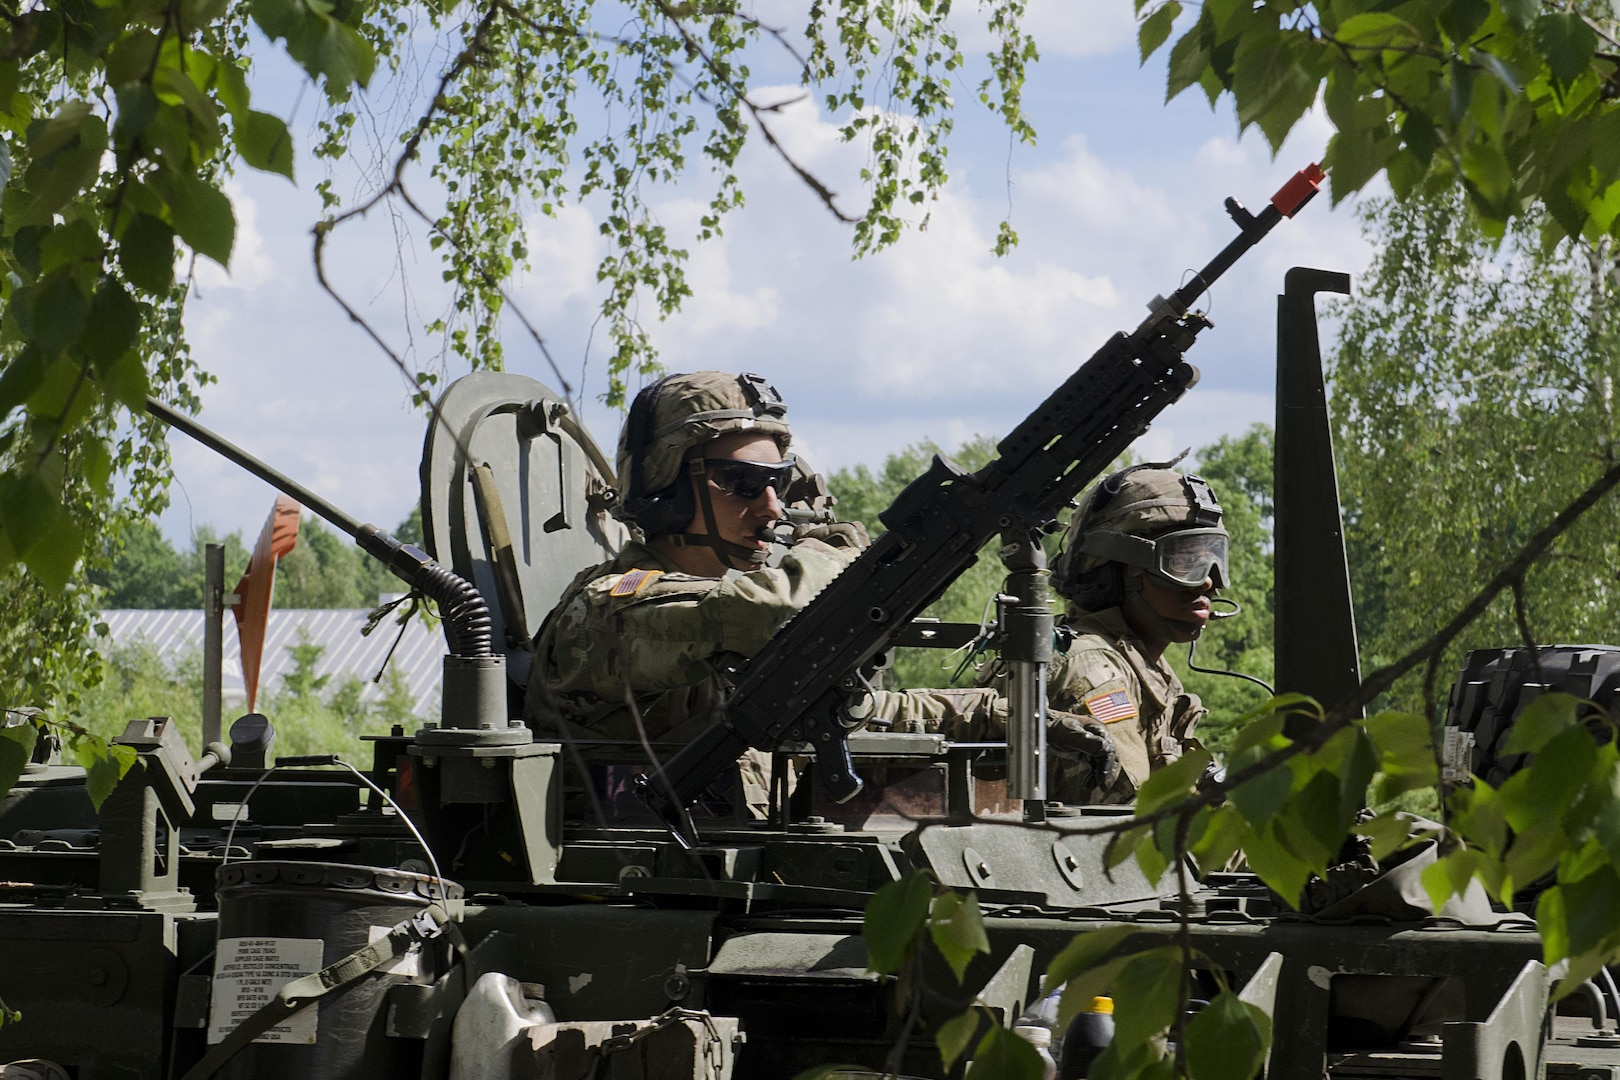 Soldiers with Enhanced Forward Presence Battle Group Poland arrive in Rukla, Lithuania, after 2-day tactical road march across Eastern Europe, June 18, 2017, as part of exercise Saber Strike 17 (U.S. Army/Justin Geiger)